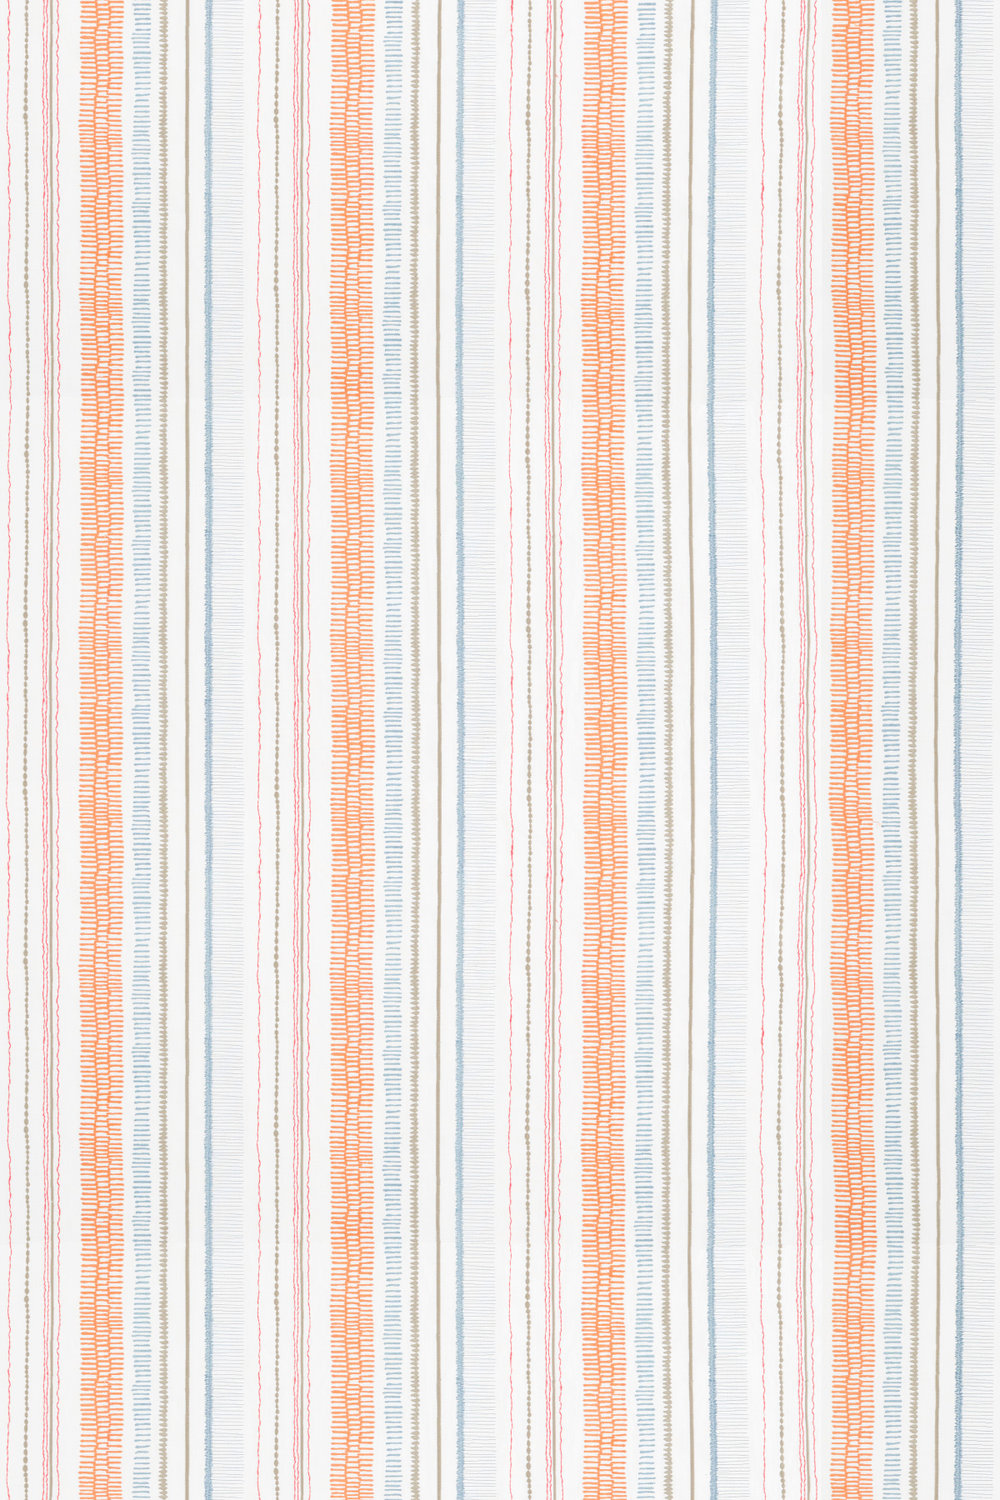 Scion Noki Satsuma / Sky / Pebble Fabric - Product code: 132153